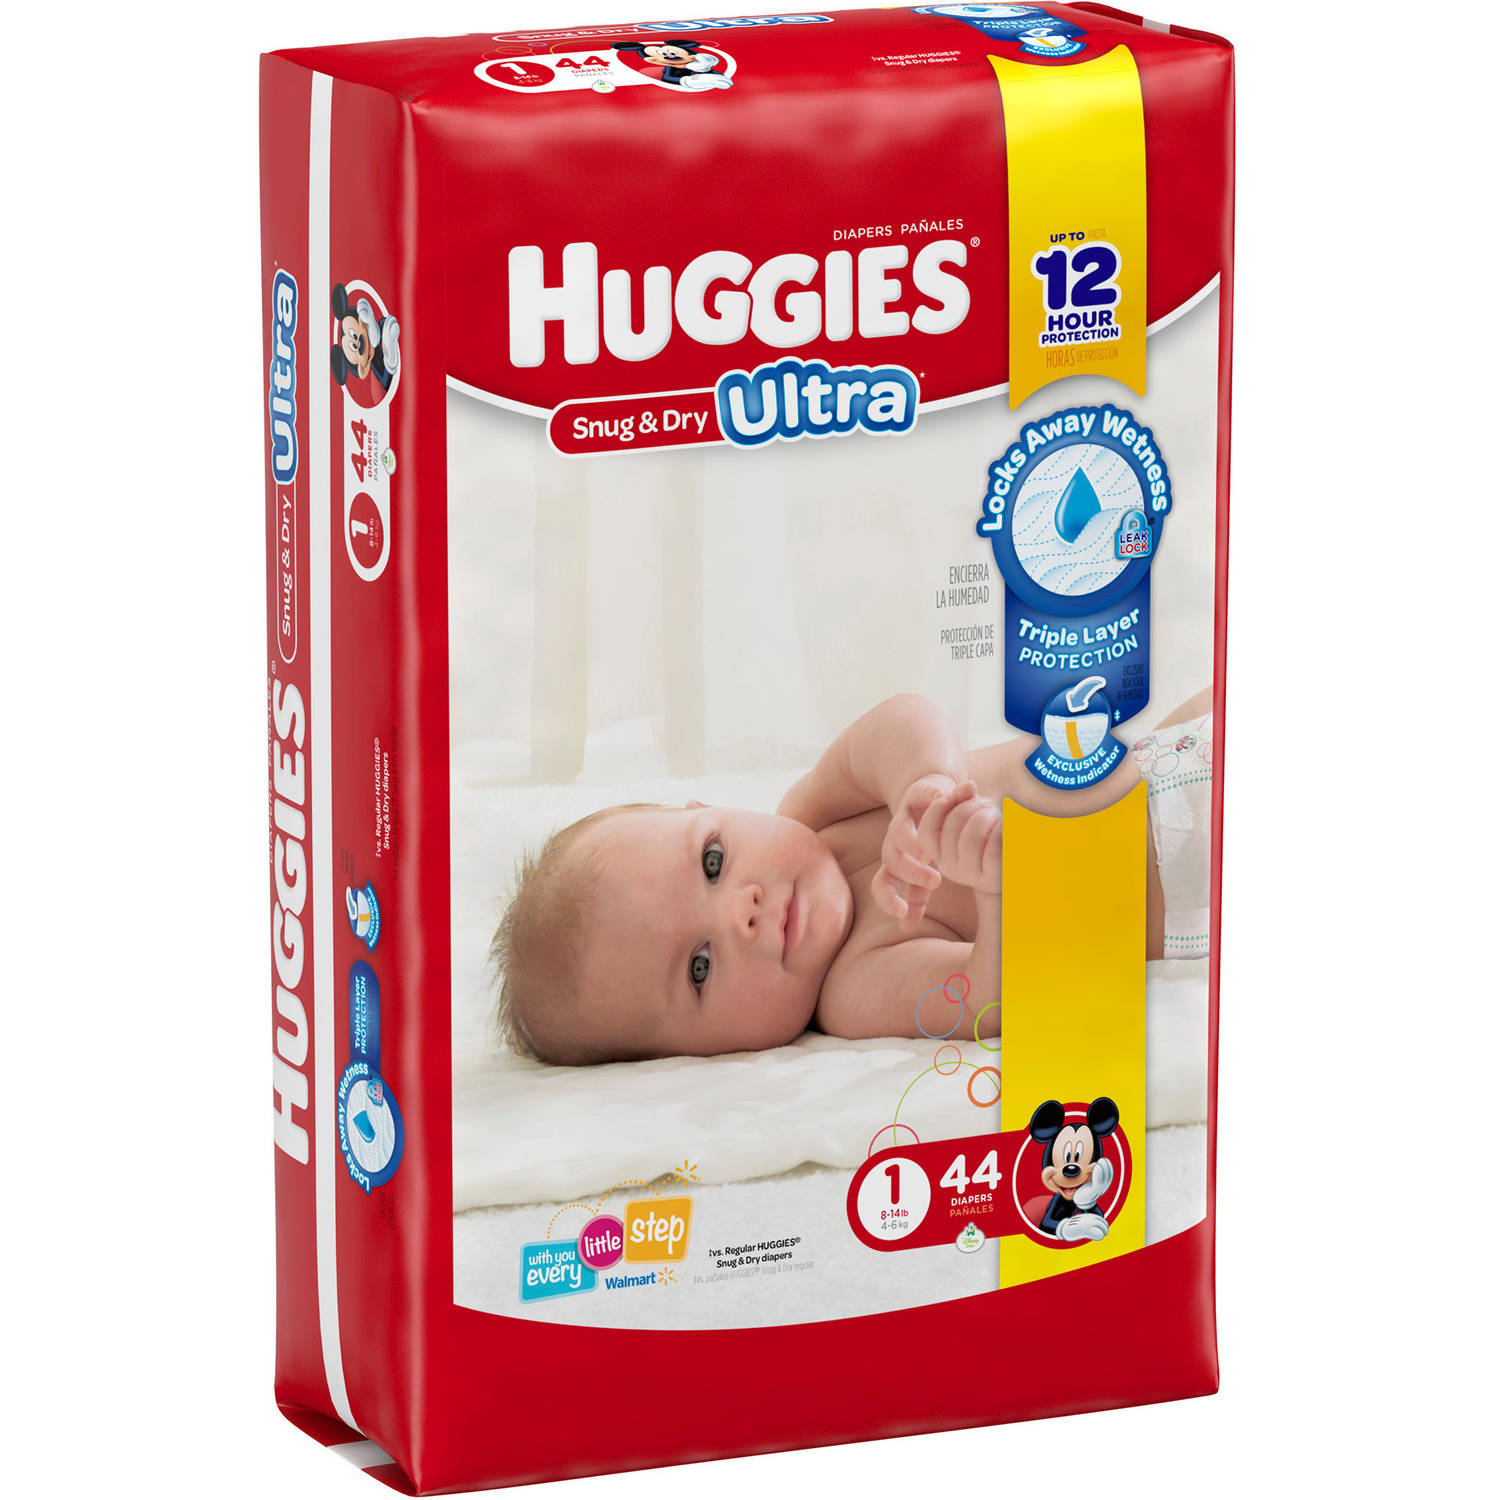 HUGGIES Snug & Dry ULTRA Diapers, Jumbo Pack, (Choose Your Size)